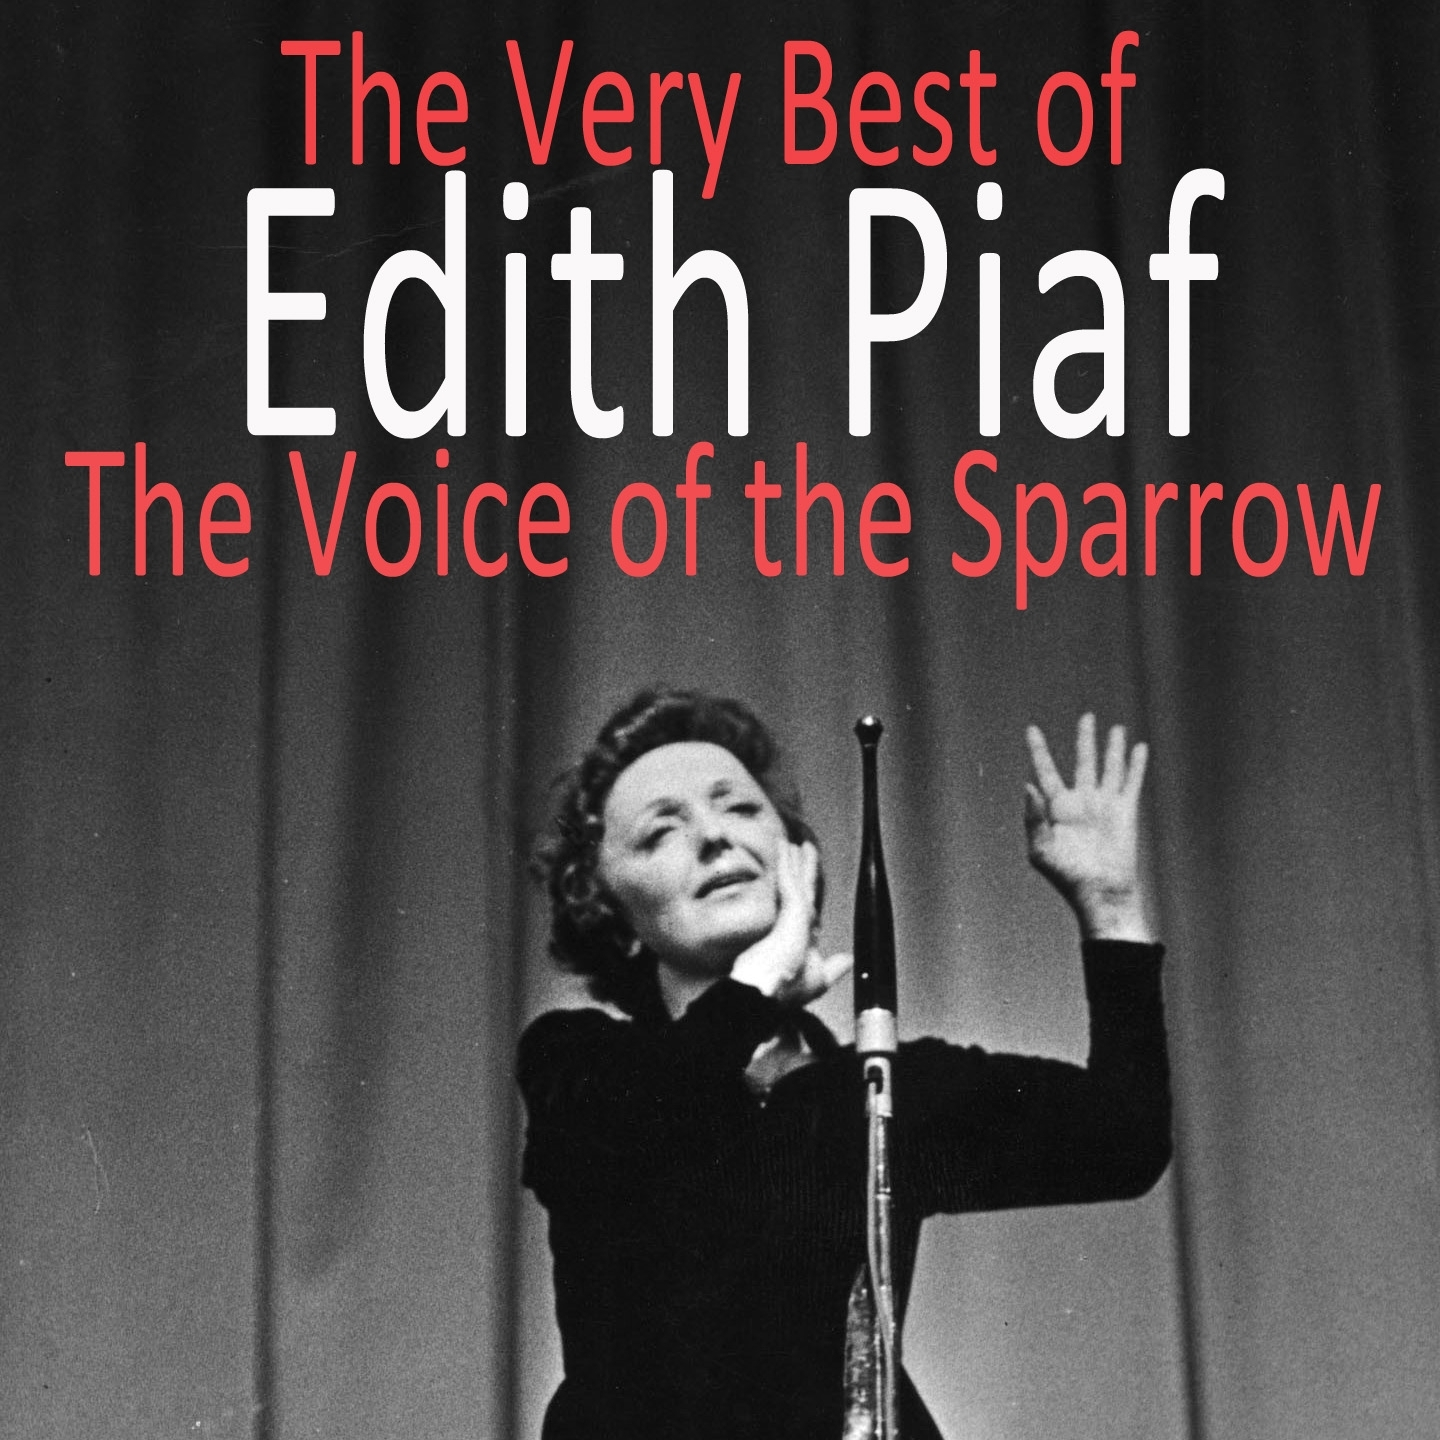 The Very Best of Edith Piaf : The Voice of the Sparrow